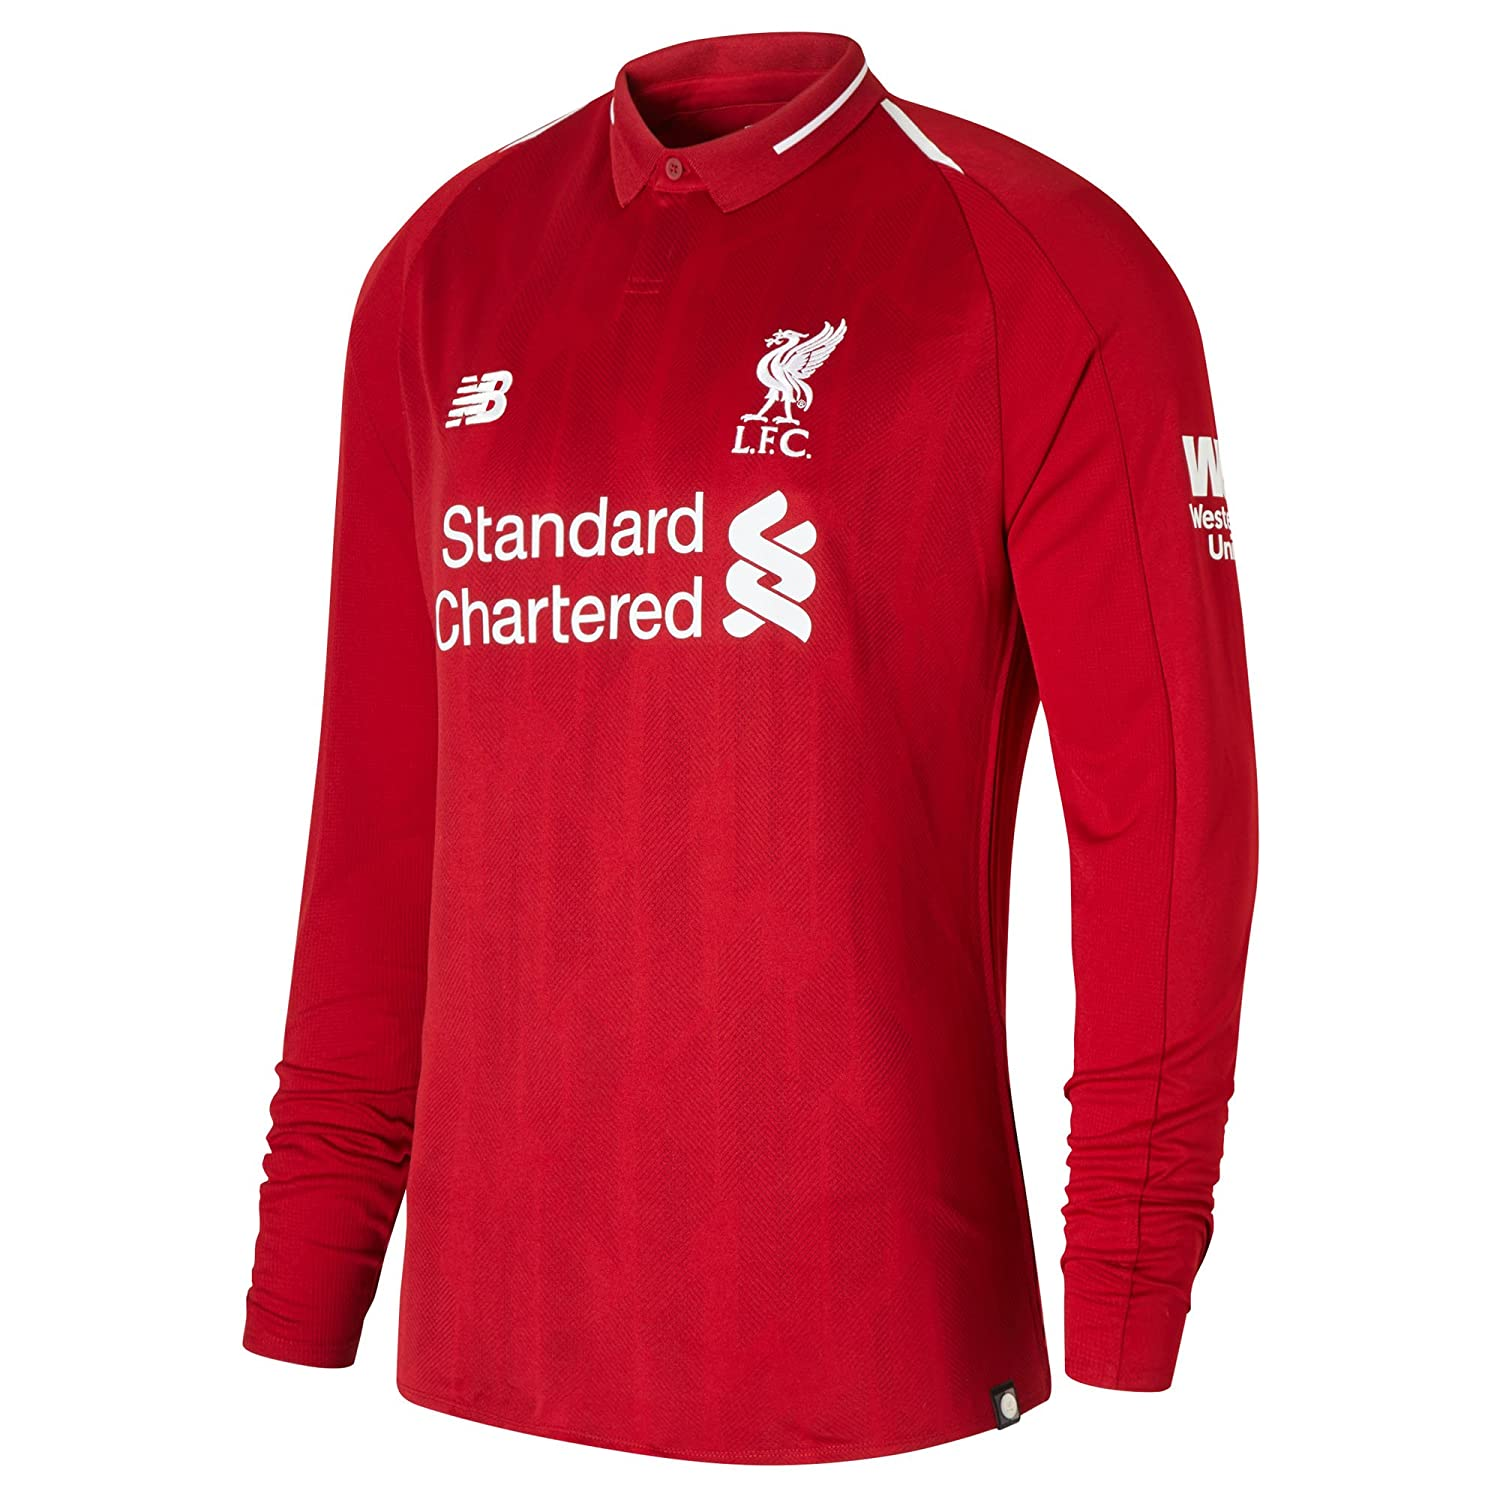 7229f6d7e139f Liverpool FC 18/19 Home L/S Football Shirt - Red - Size XL: Amazon.co.uk:  Clothing